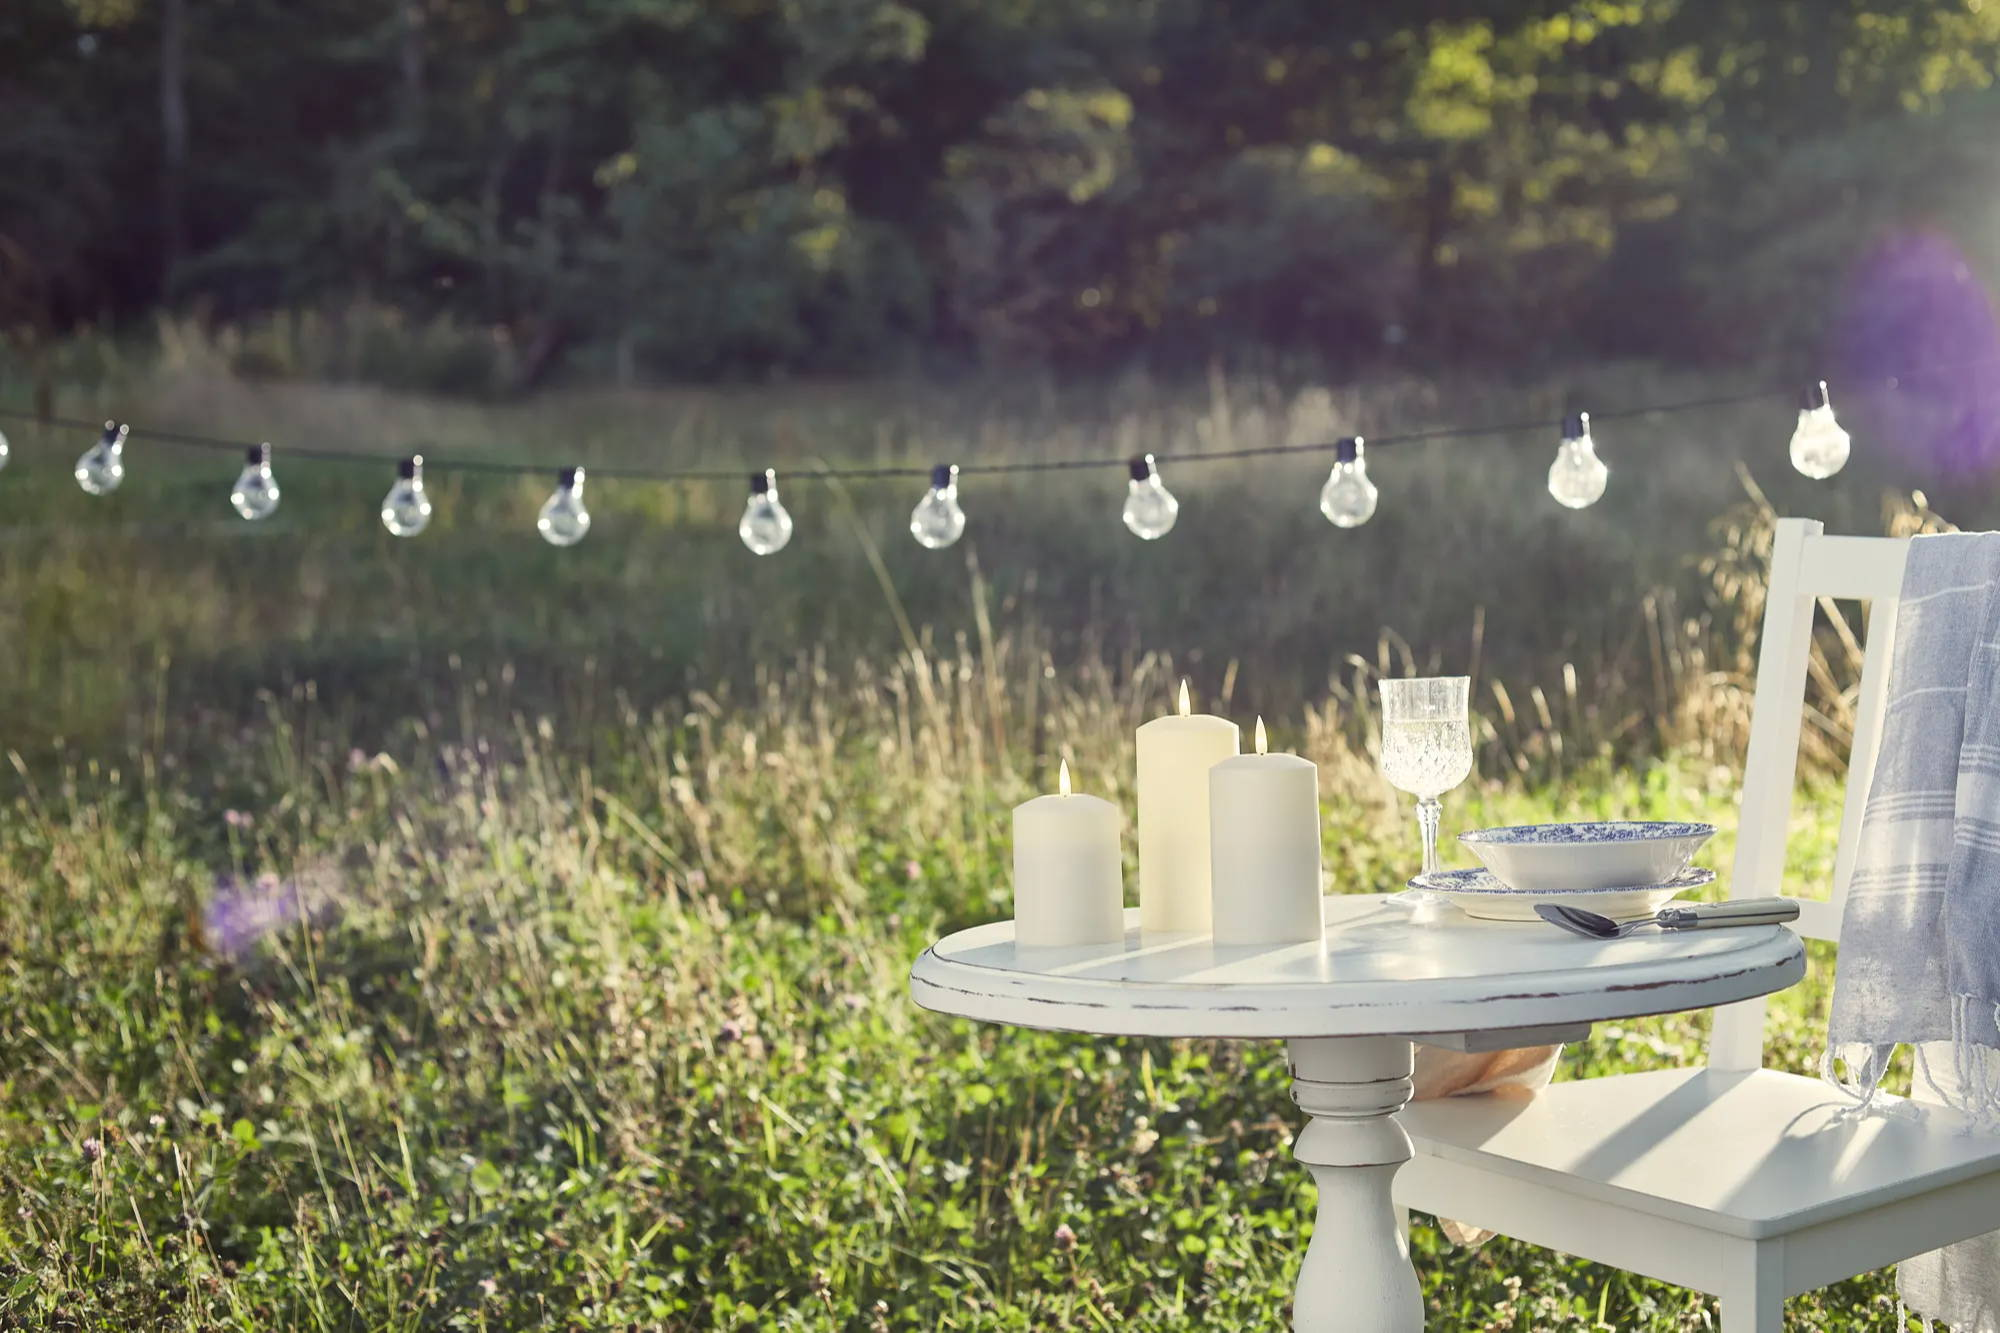 Globe bulb string lights illuminated over alfresco table with flameless candles displayed